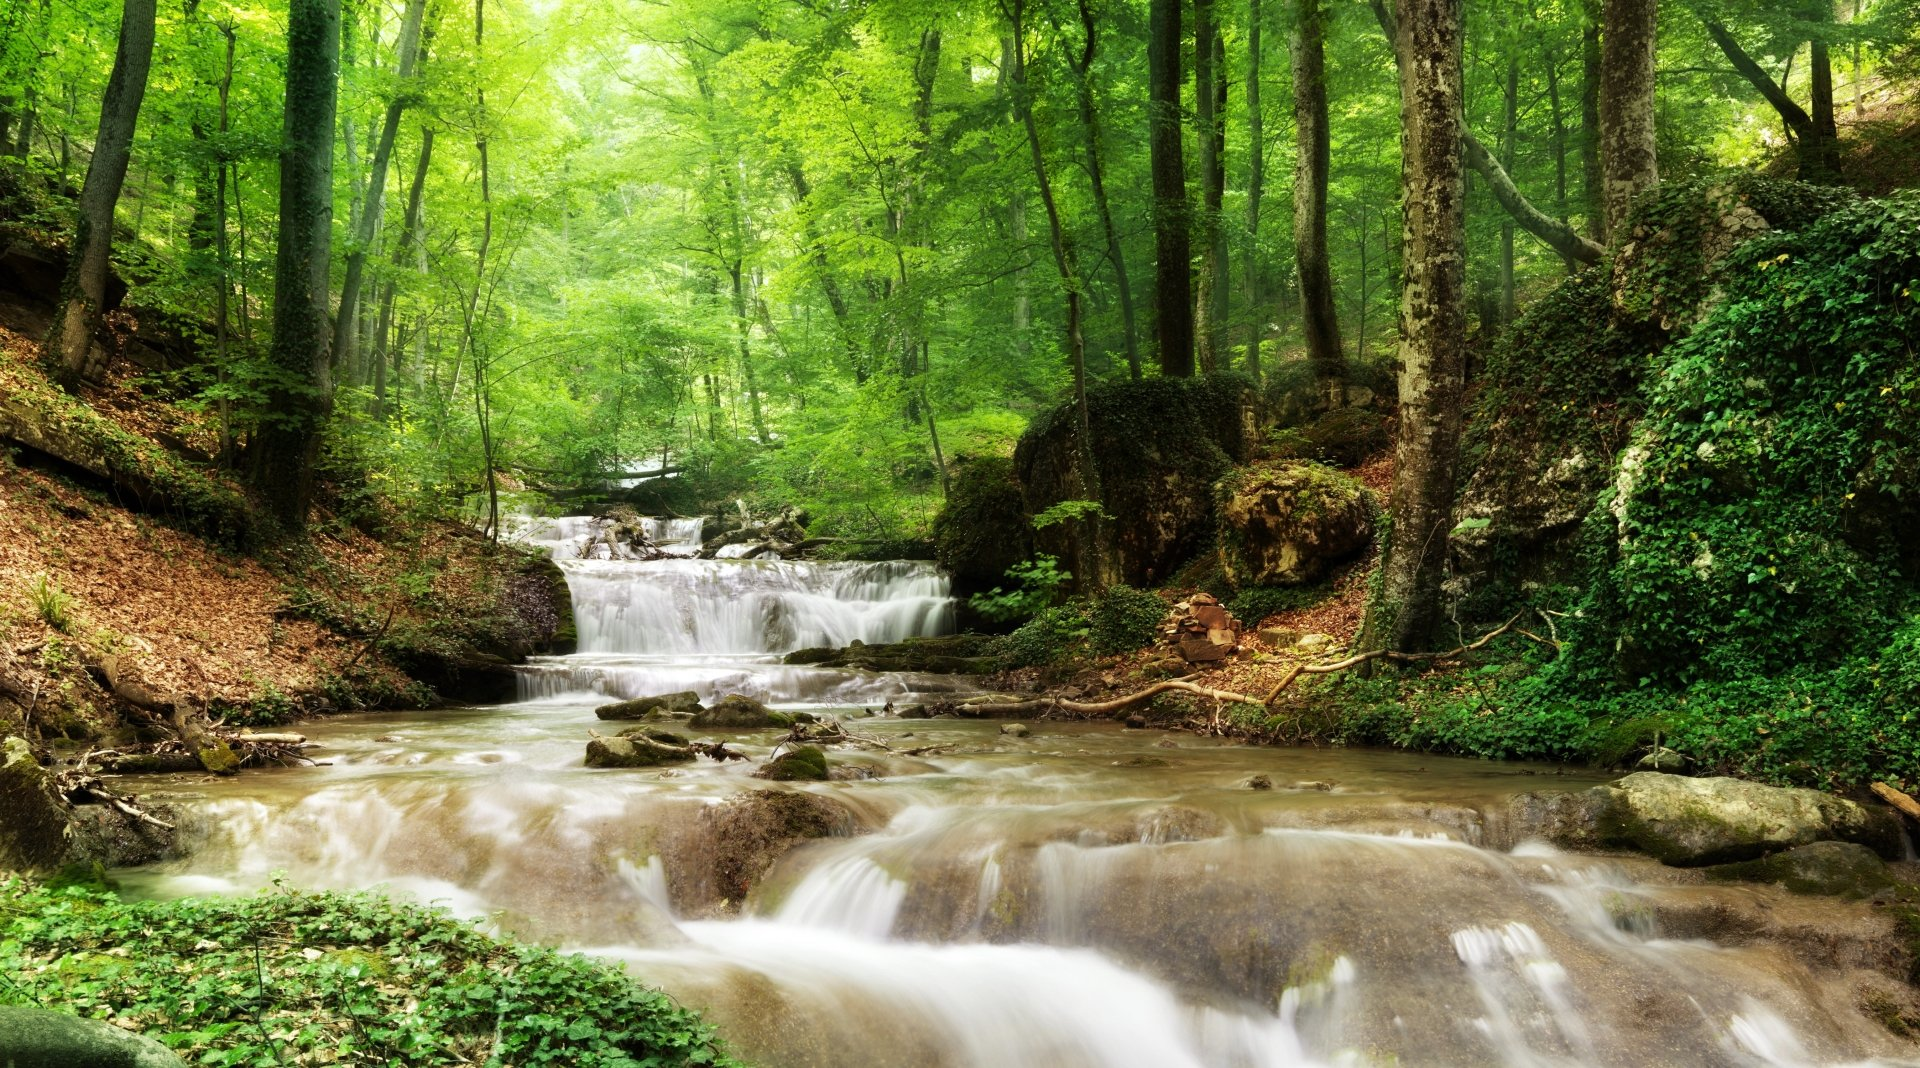 Earth - Stream  Nature Forest Greenery Rock Wallpaper